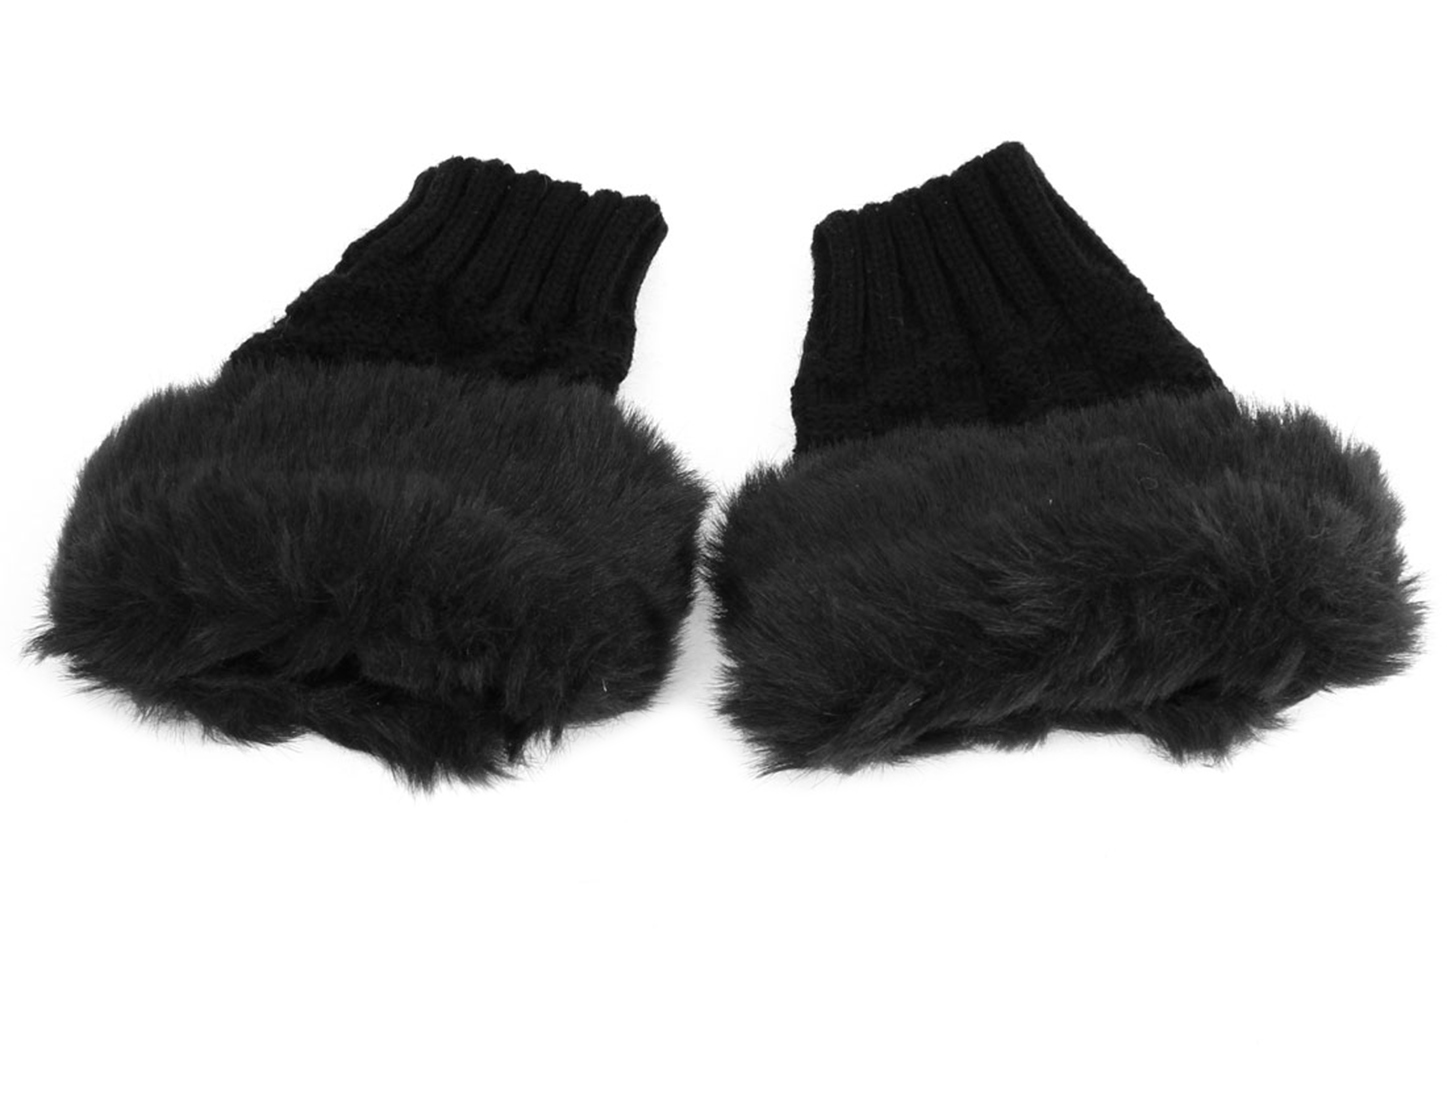 Woman Pair Black Faux Fur Thumb Hole Winter Wrist Fingerless Gloves